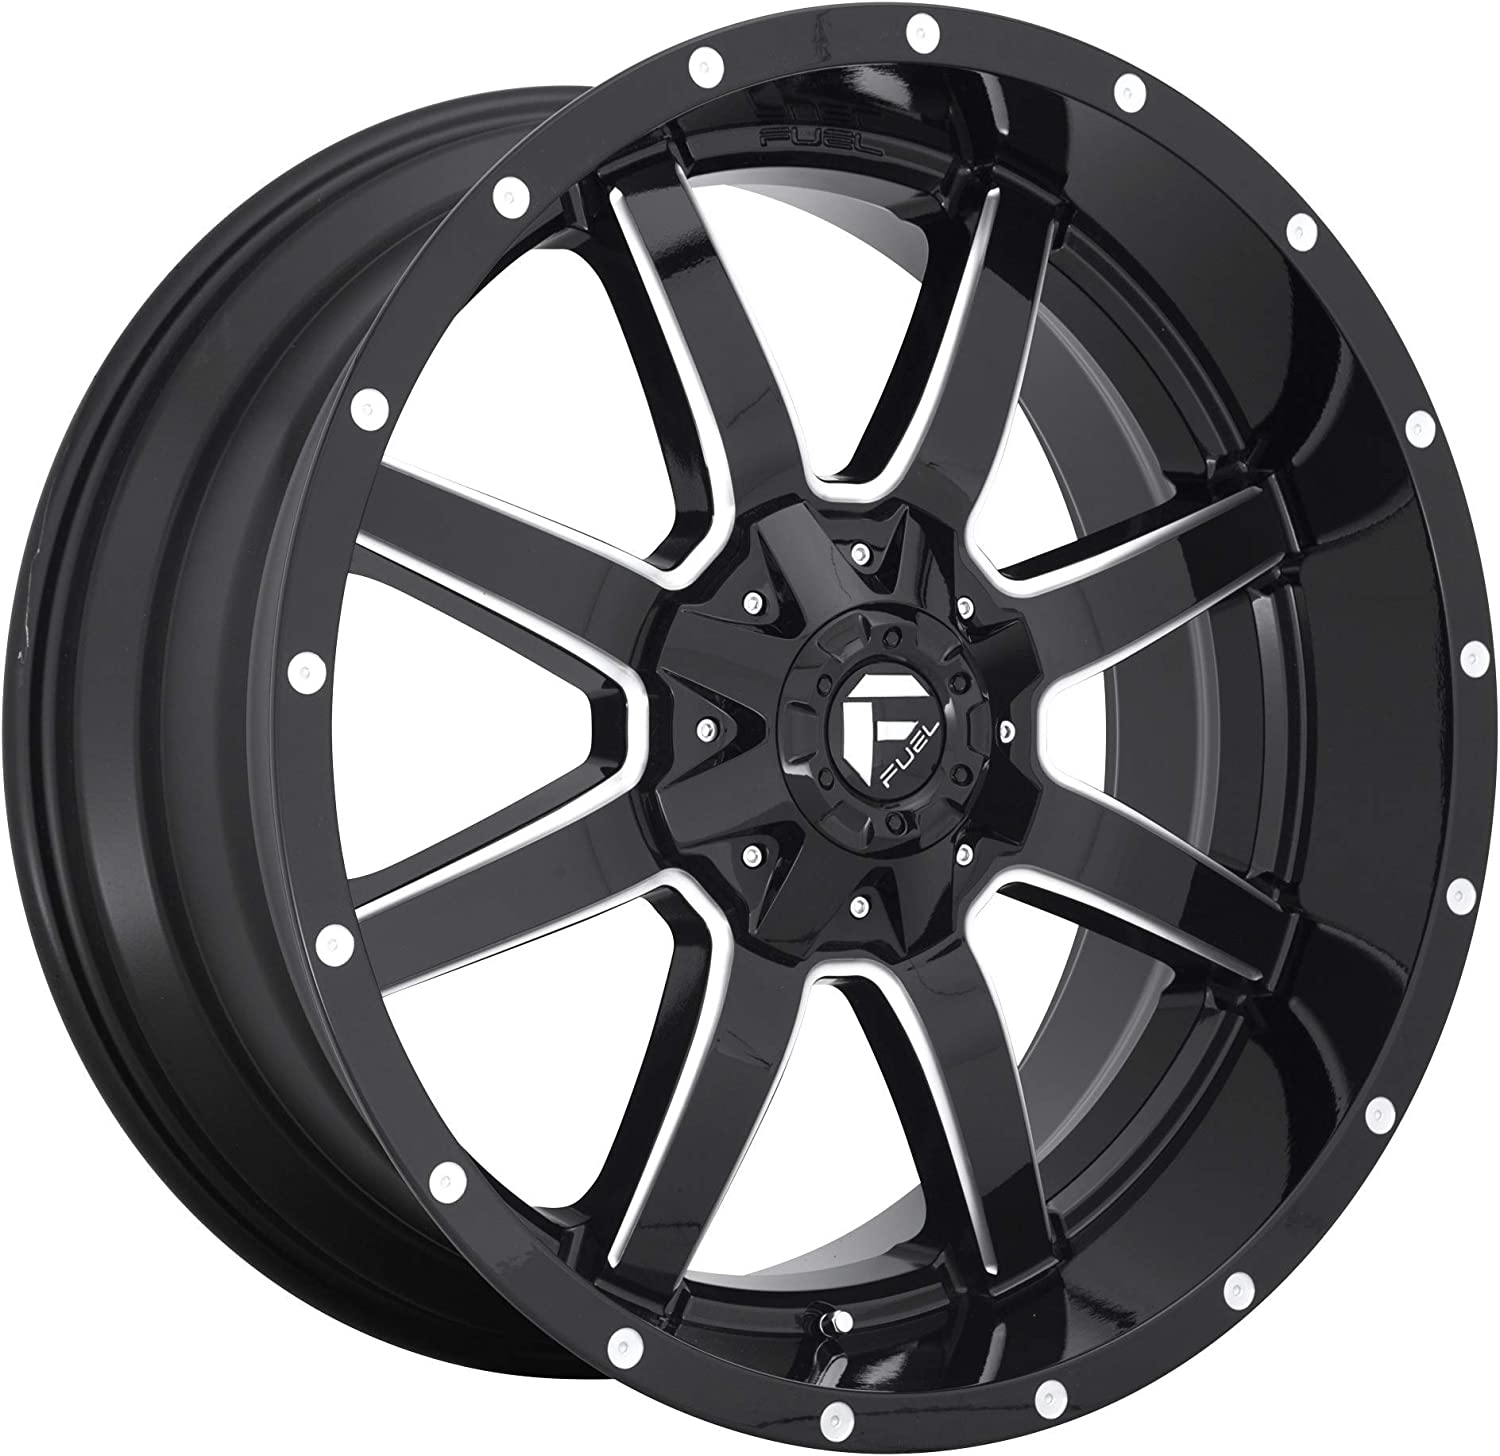 Los Angeles Popular shop is the lowest price challenge Mall Fuel Offroad D61020201747 BLACK Wheel 20 inches 8 170 x 12.